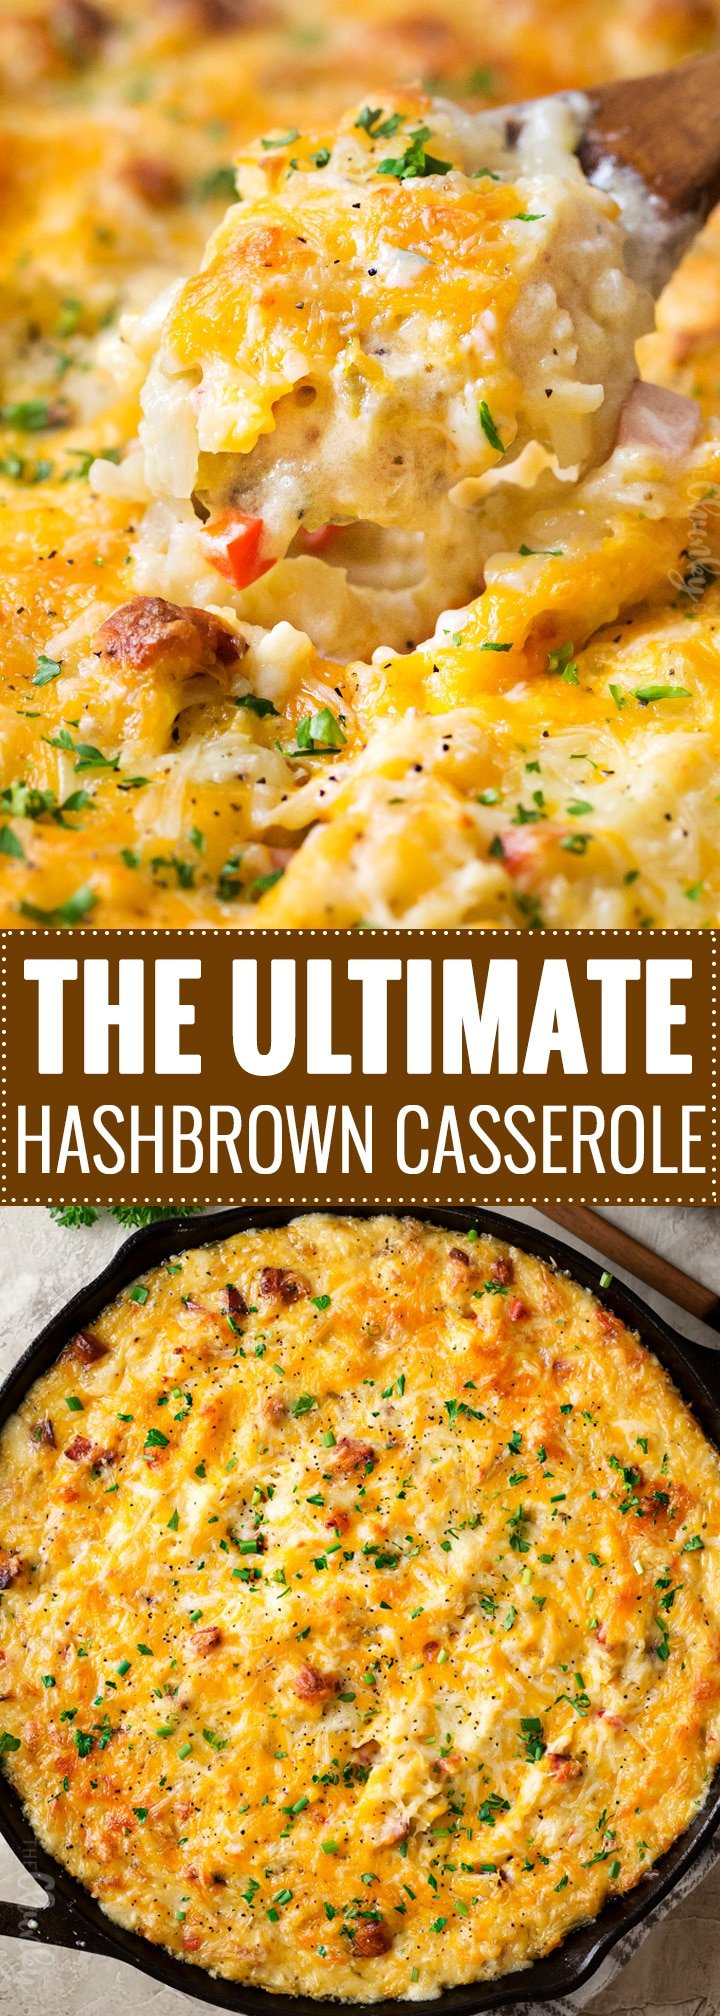 "The Ultimate Hashbrown Casserole | This classic side or potluck dish is made with no ""cream of"" soups, and is perfect for any occasion! 